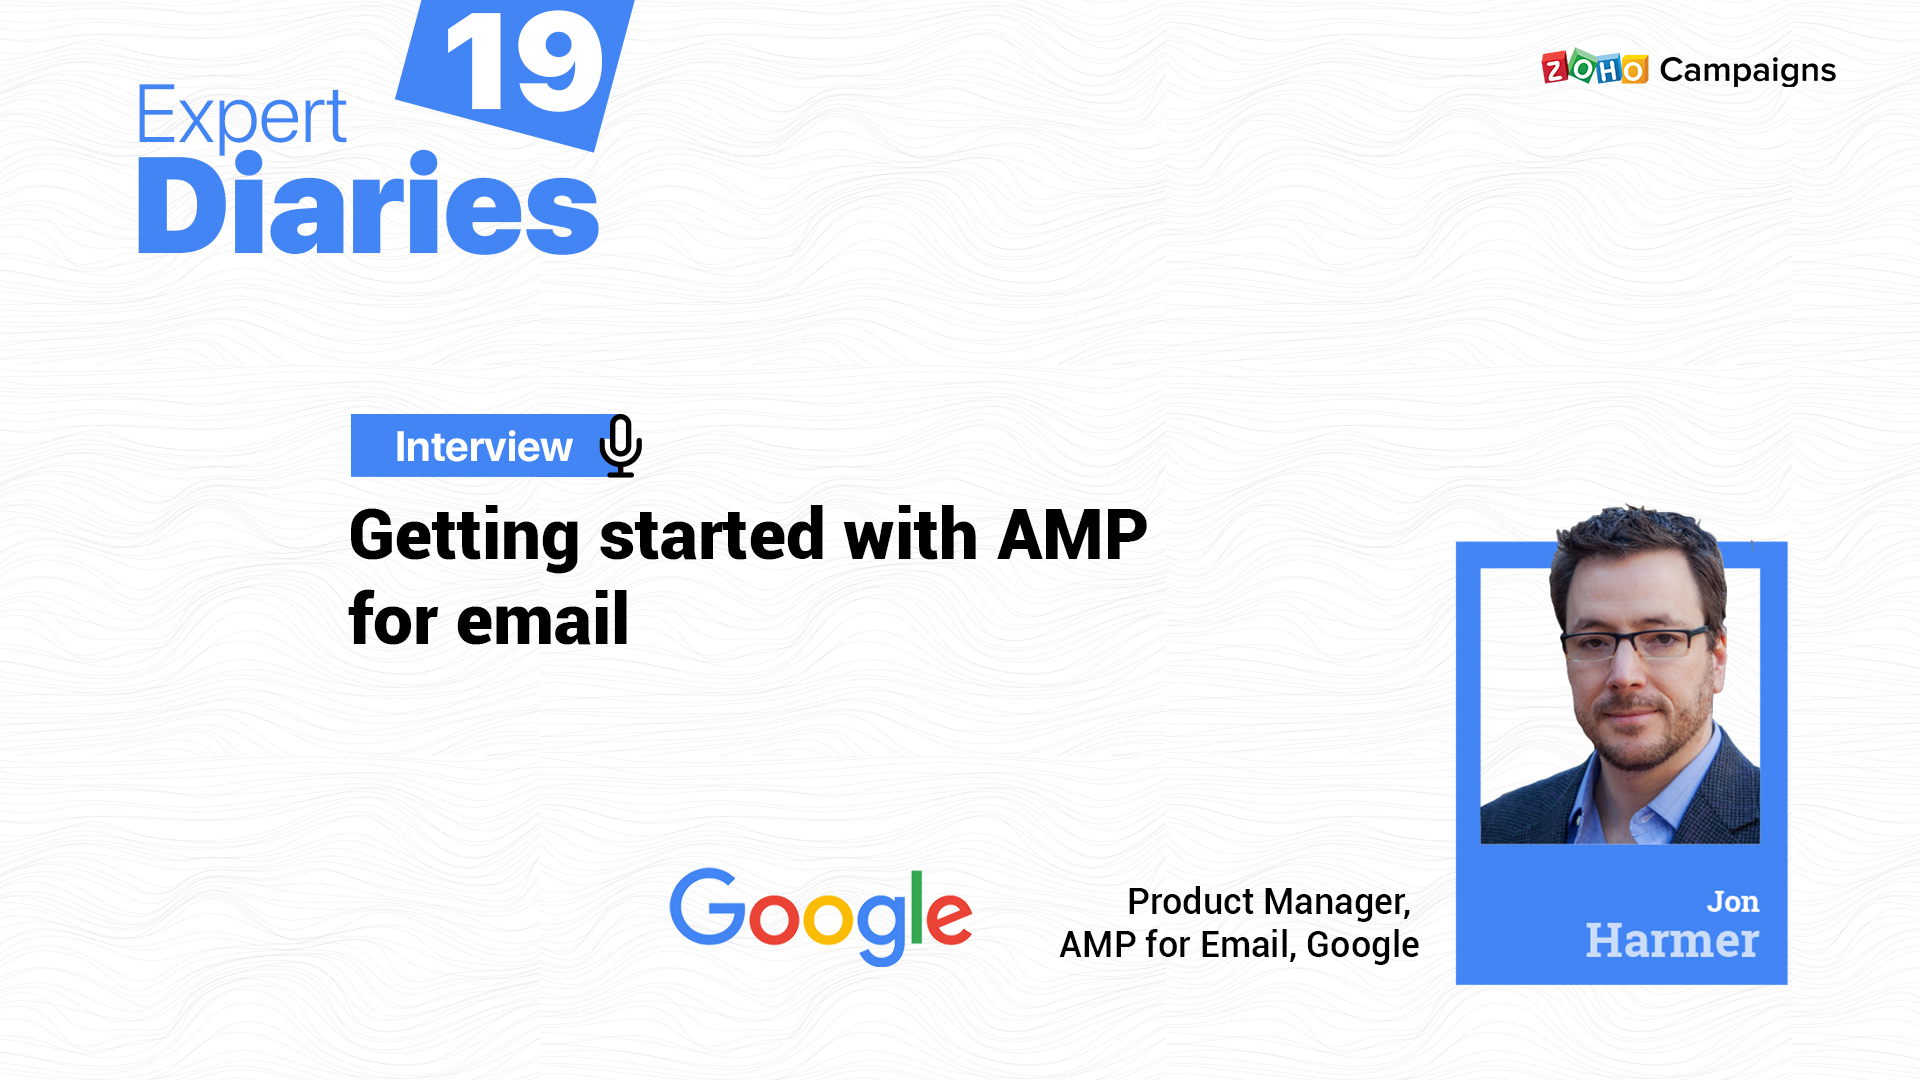 Getting started with AMP for email